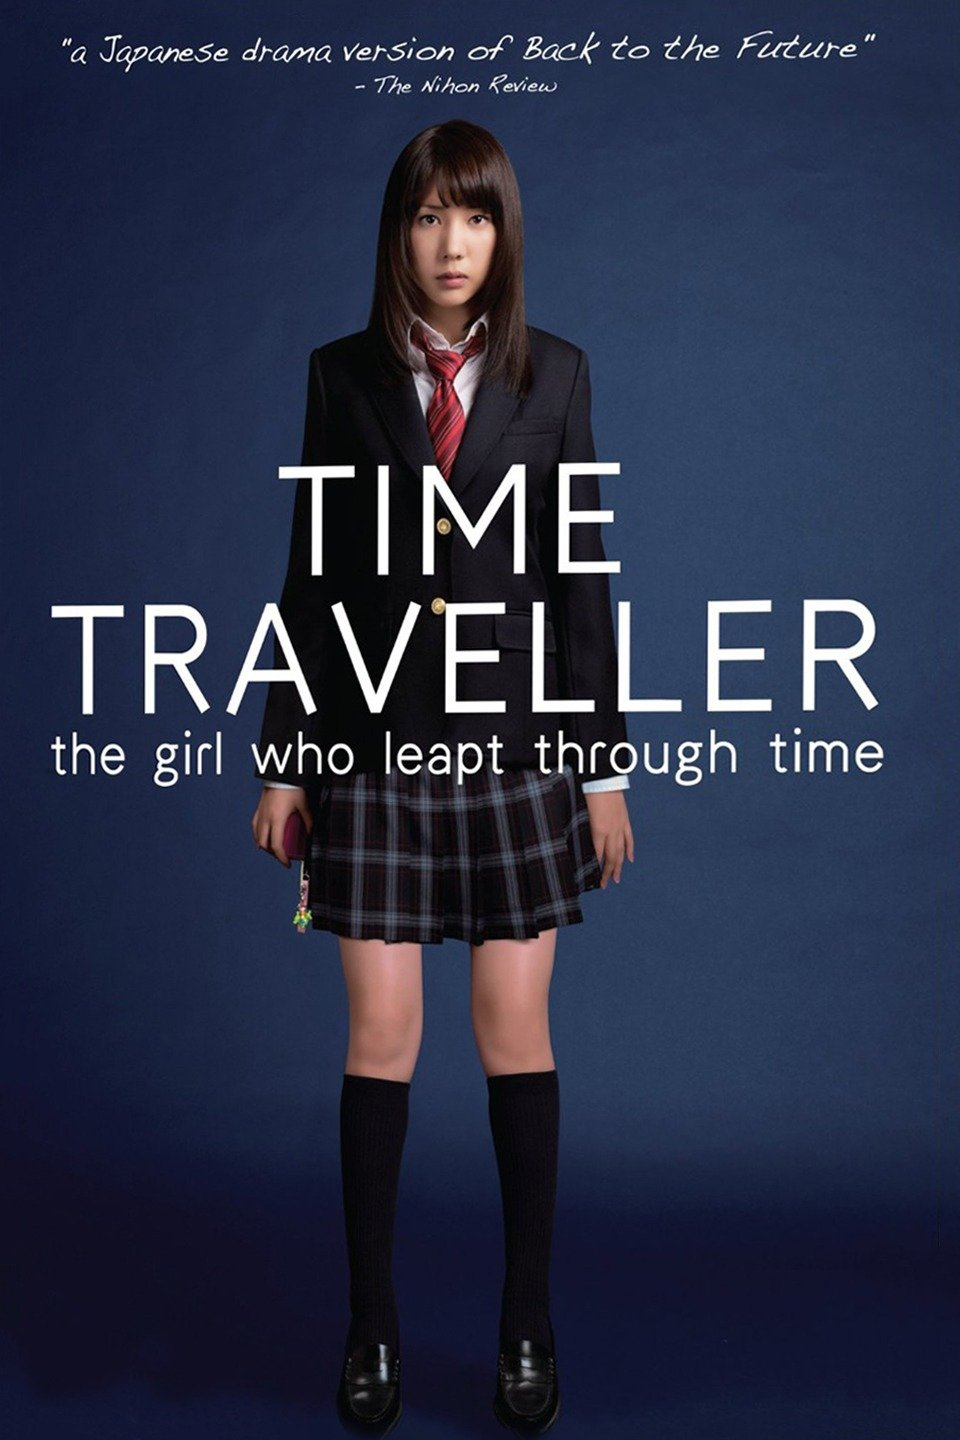 The Girl Who Leapt Through Time-時をかける少女